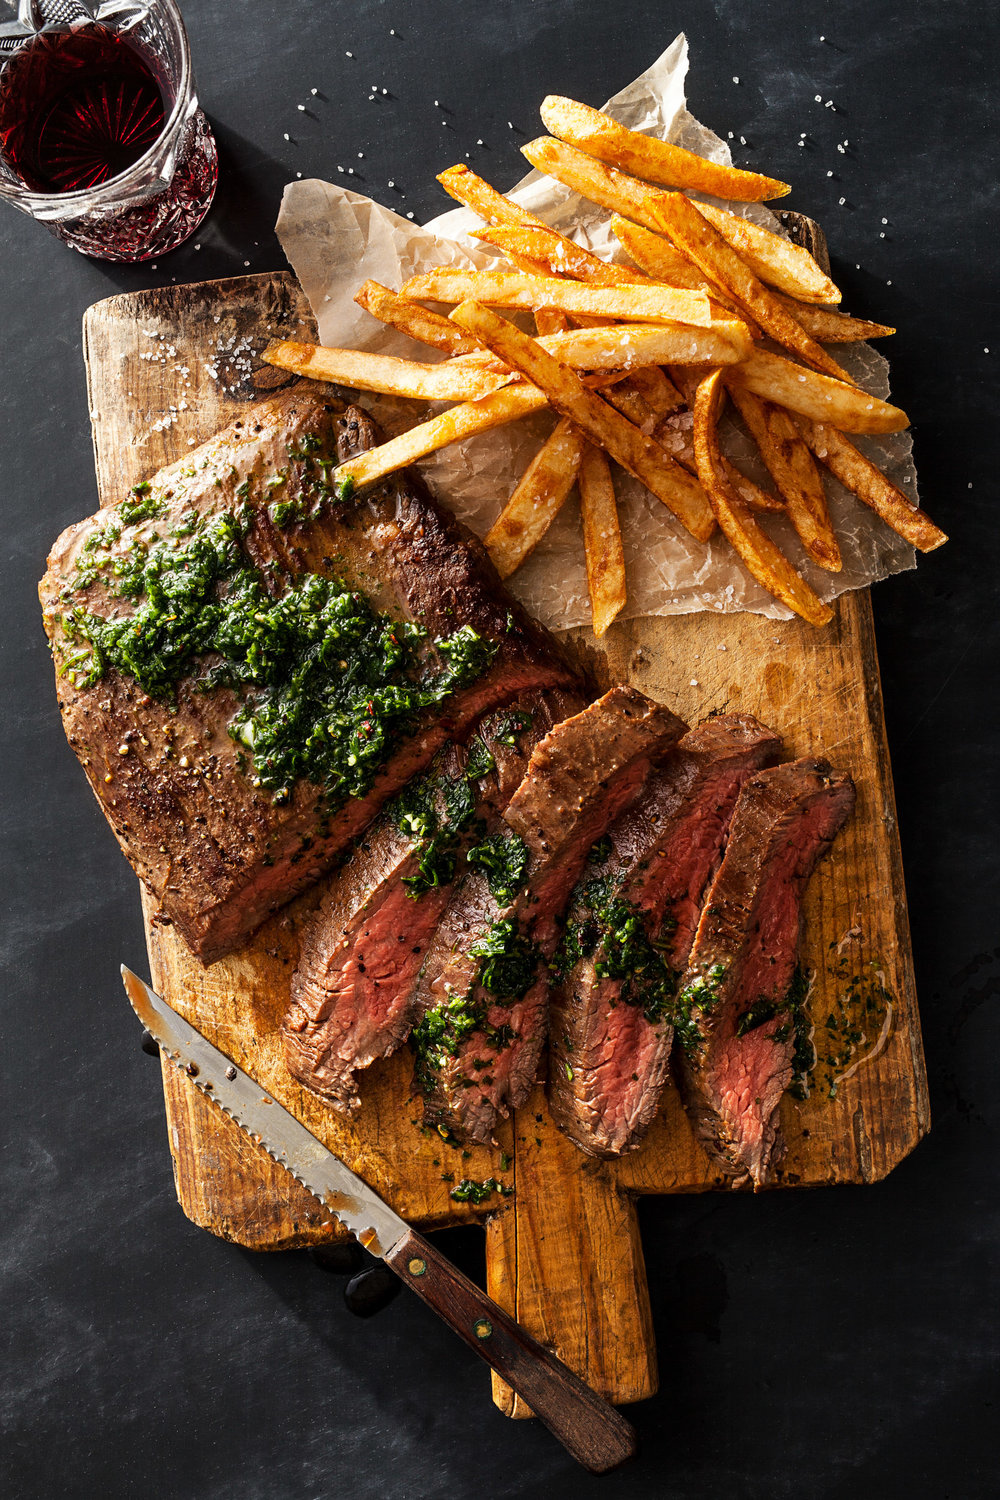 food-chimichurri-steak-fries-lesliegrow.jpg